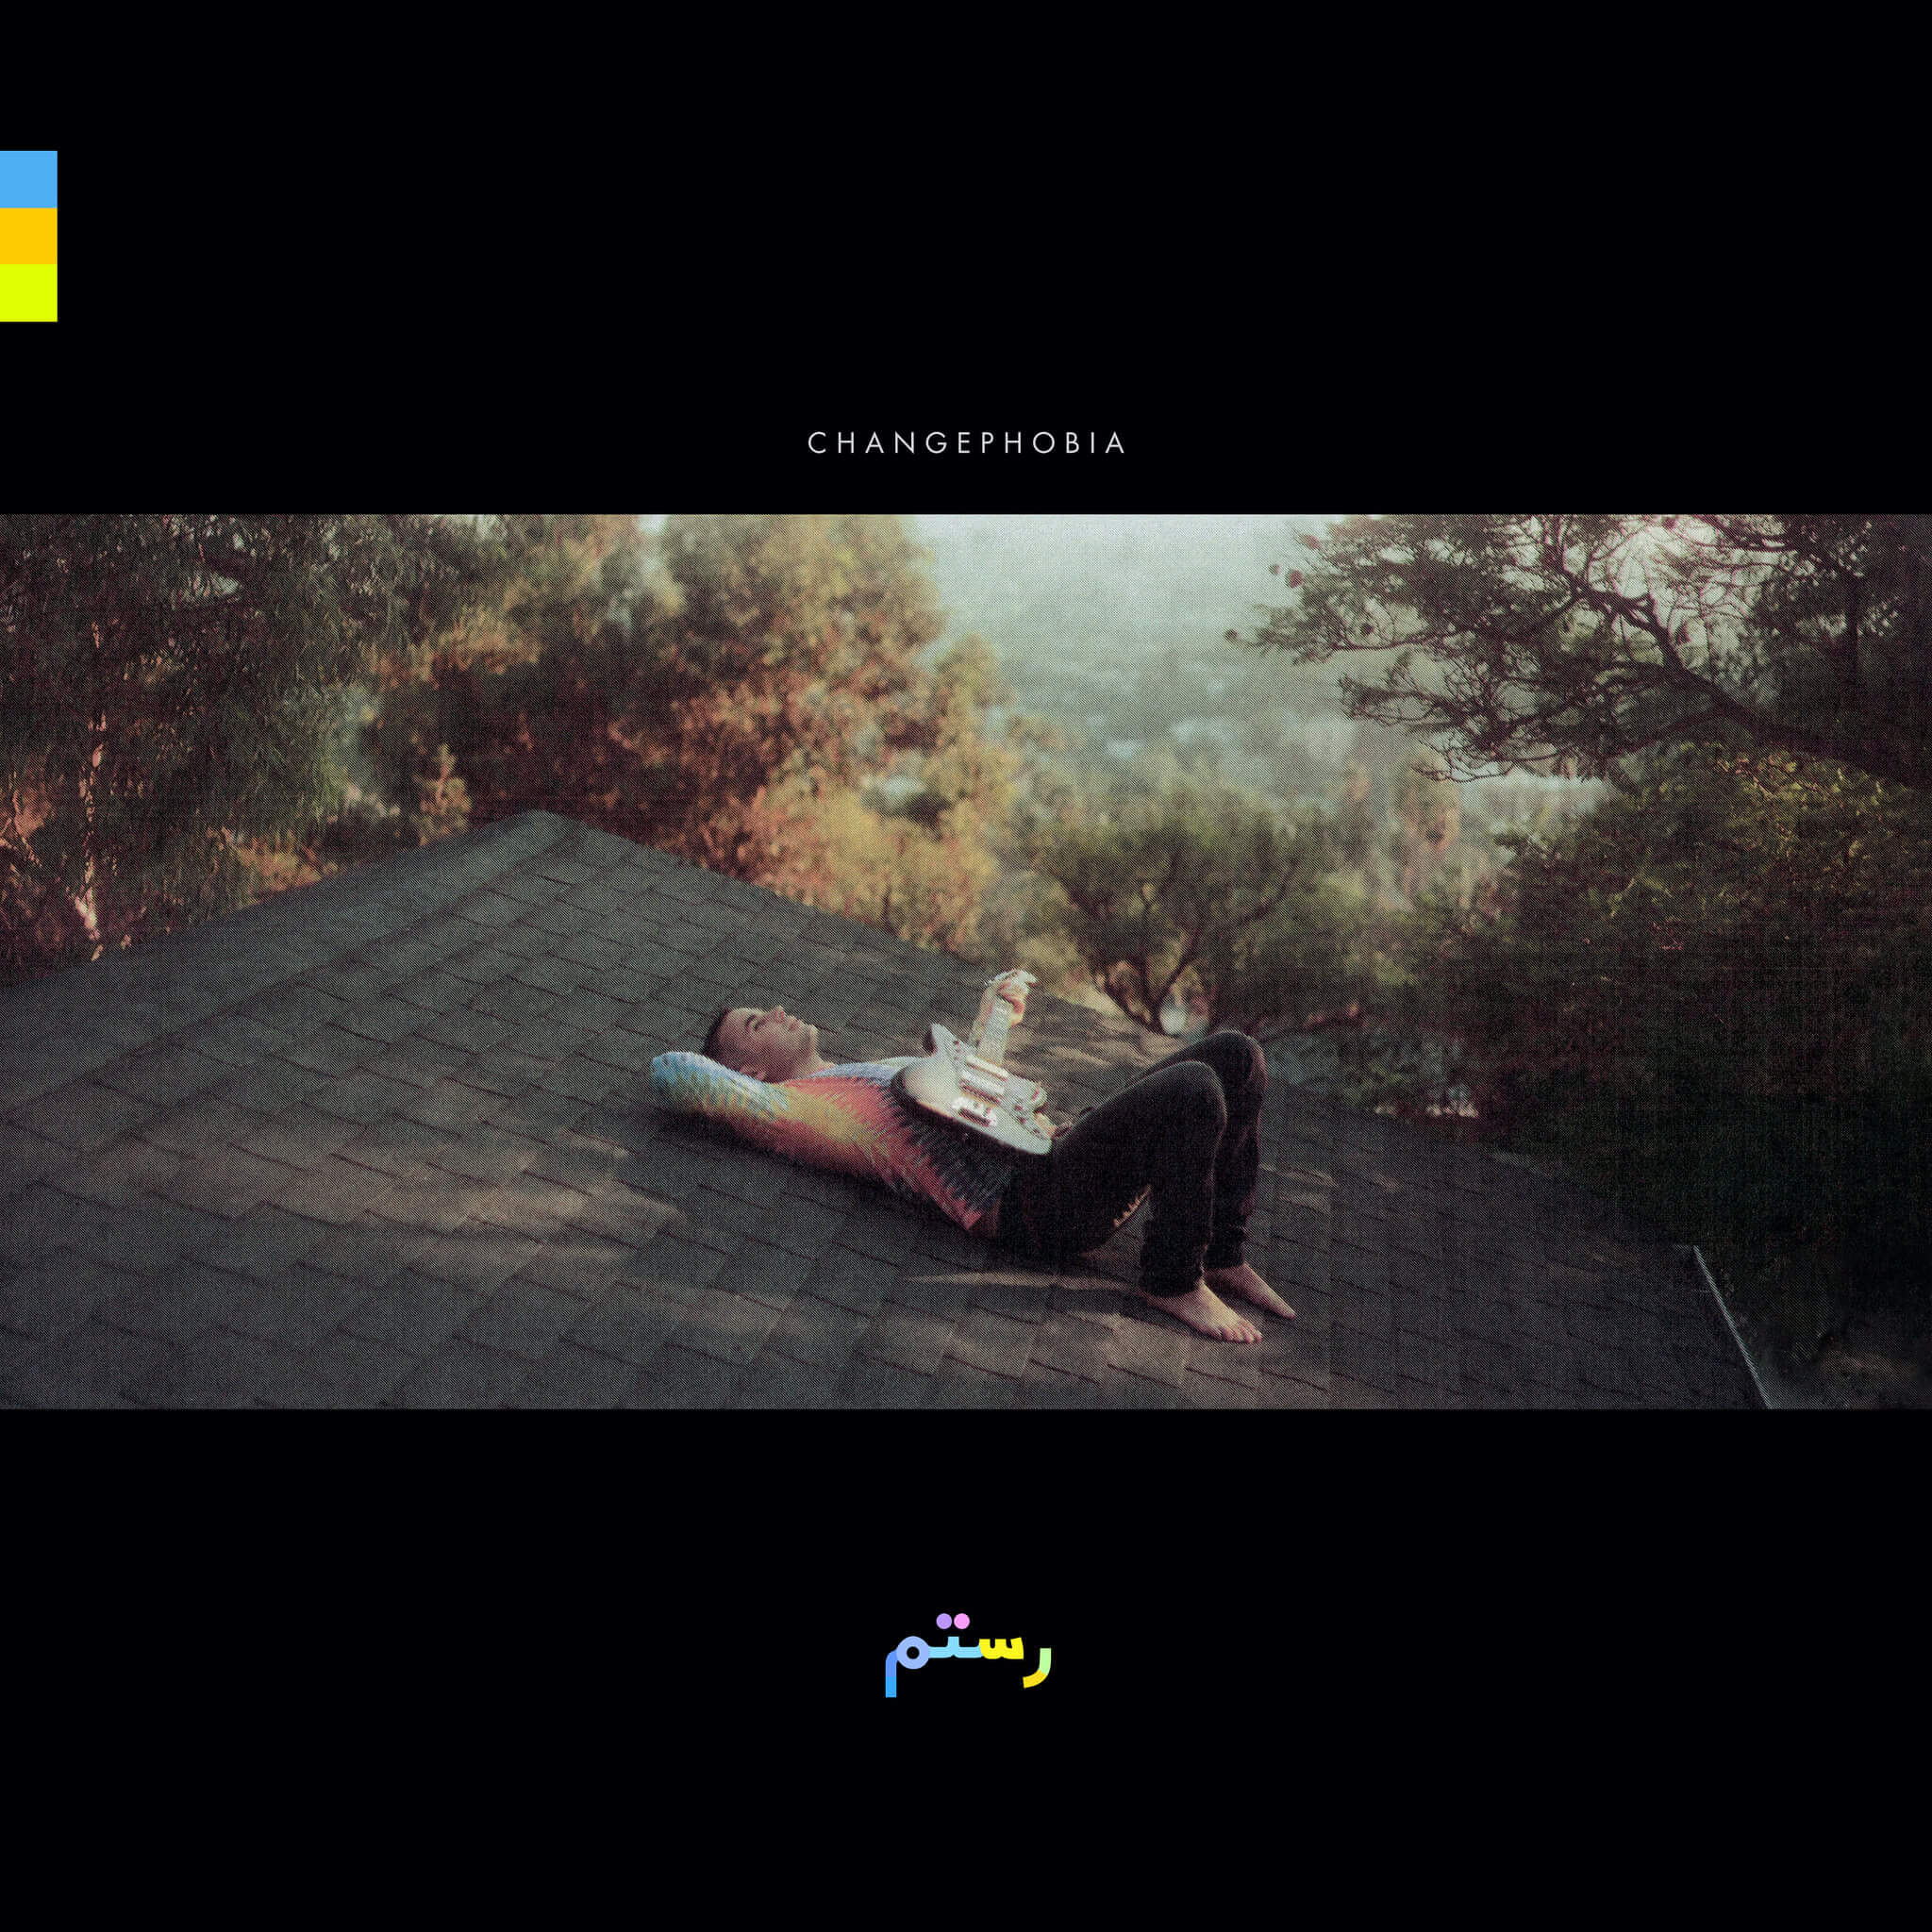 Changephobia by Rostam album review by Adam Fink for Northern Transmissions